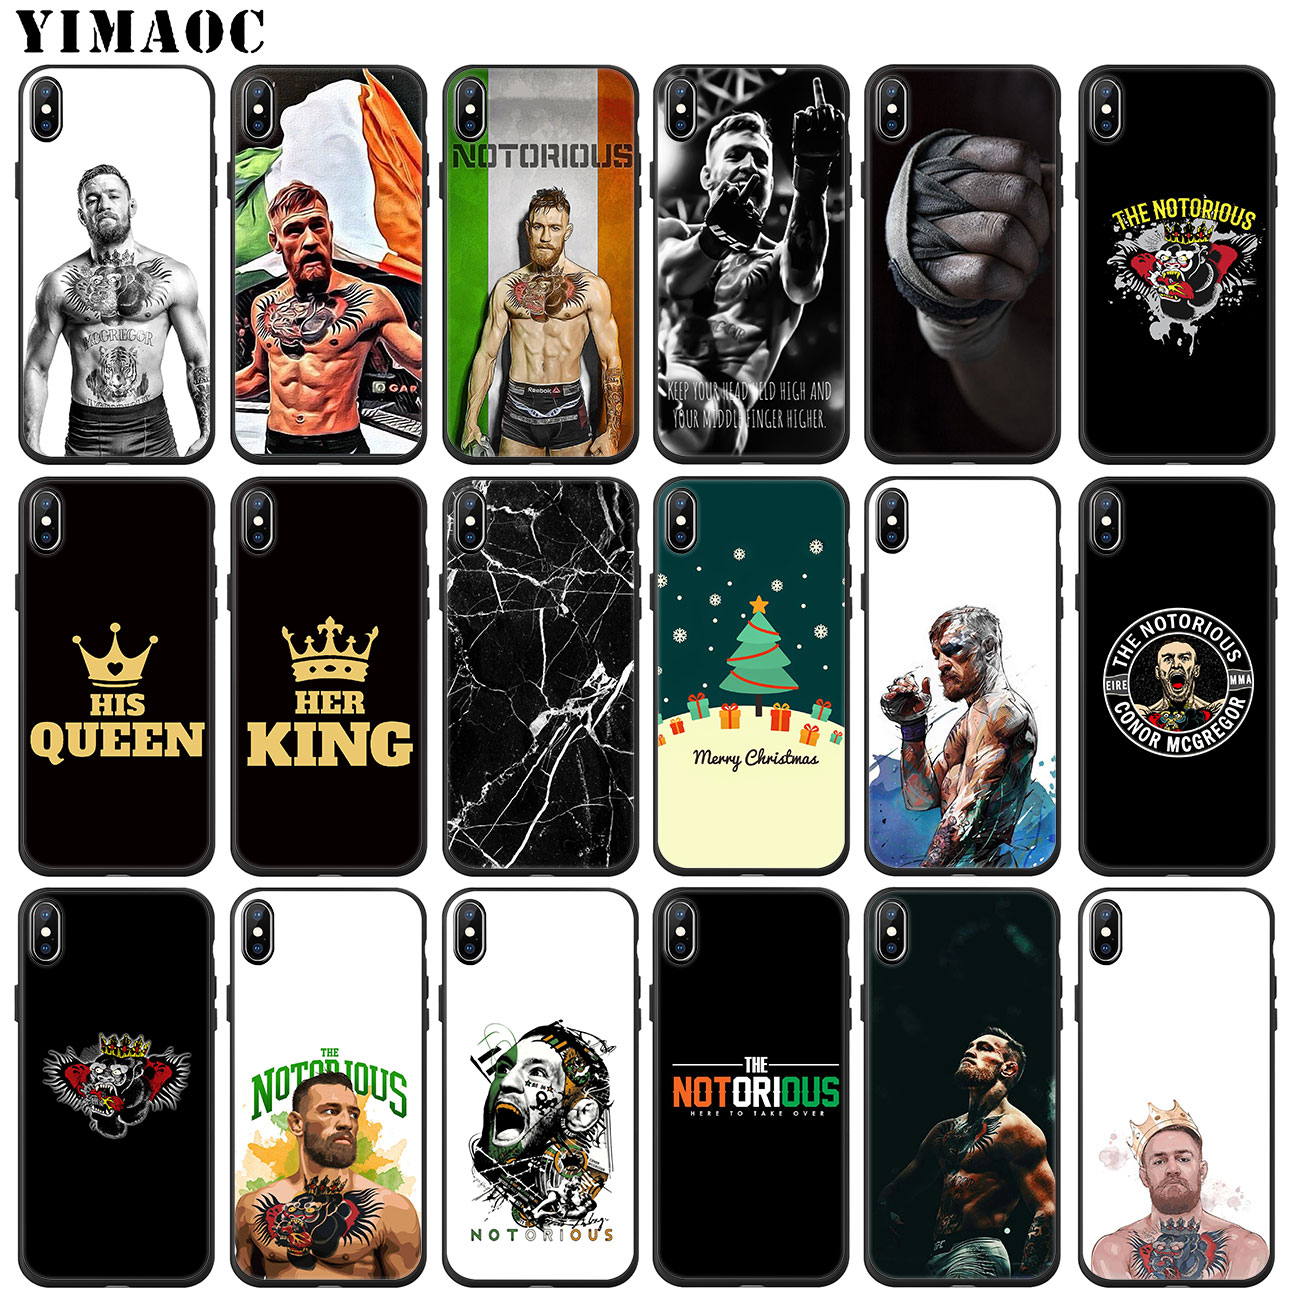 d3f477de0 YIMAOC Conor McGregor cool Soft Silicone Phone Case for iPhone XS Max XR X  6 6S 7 8 Plus 5 5S SE 10 TPU Black Cover